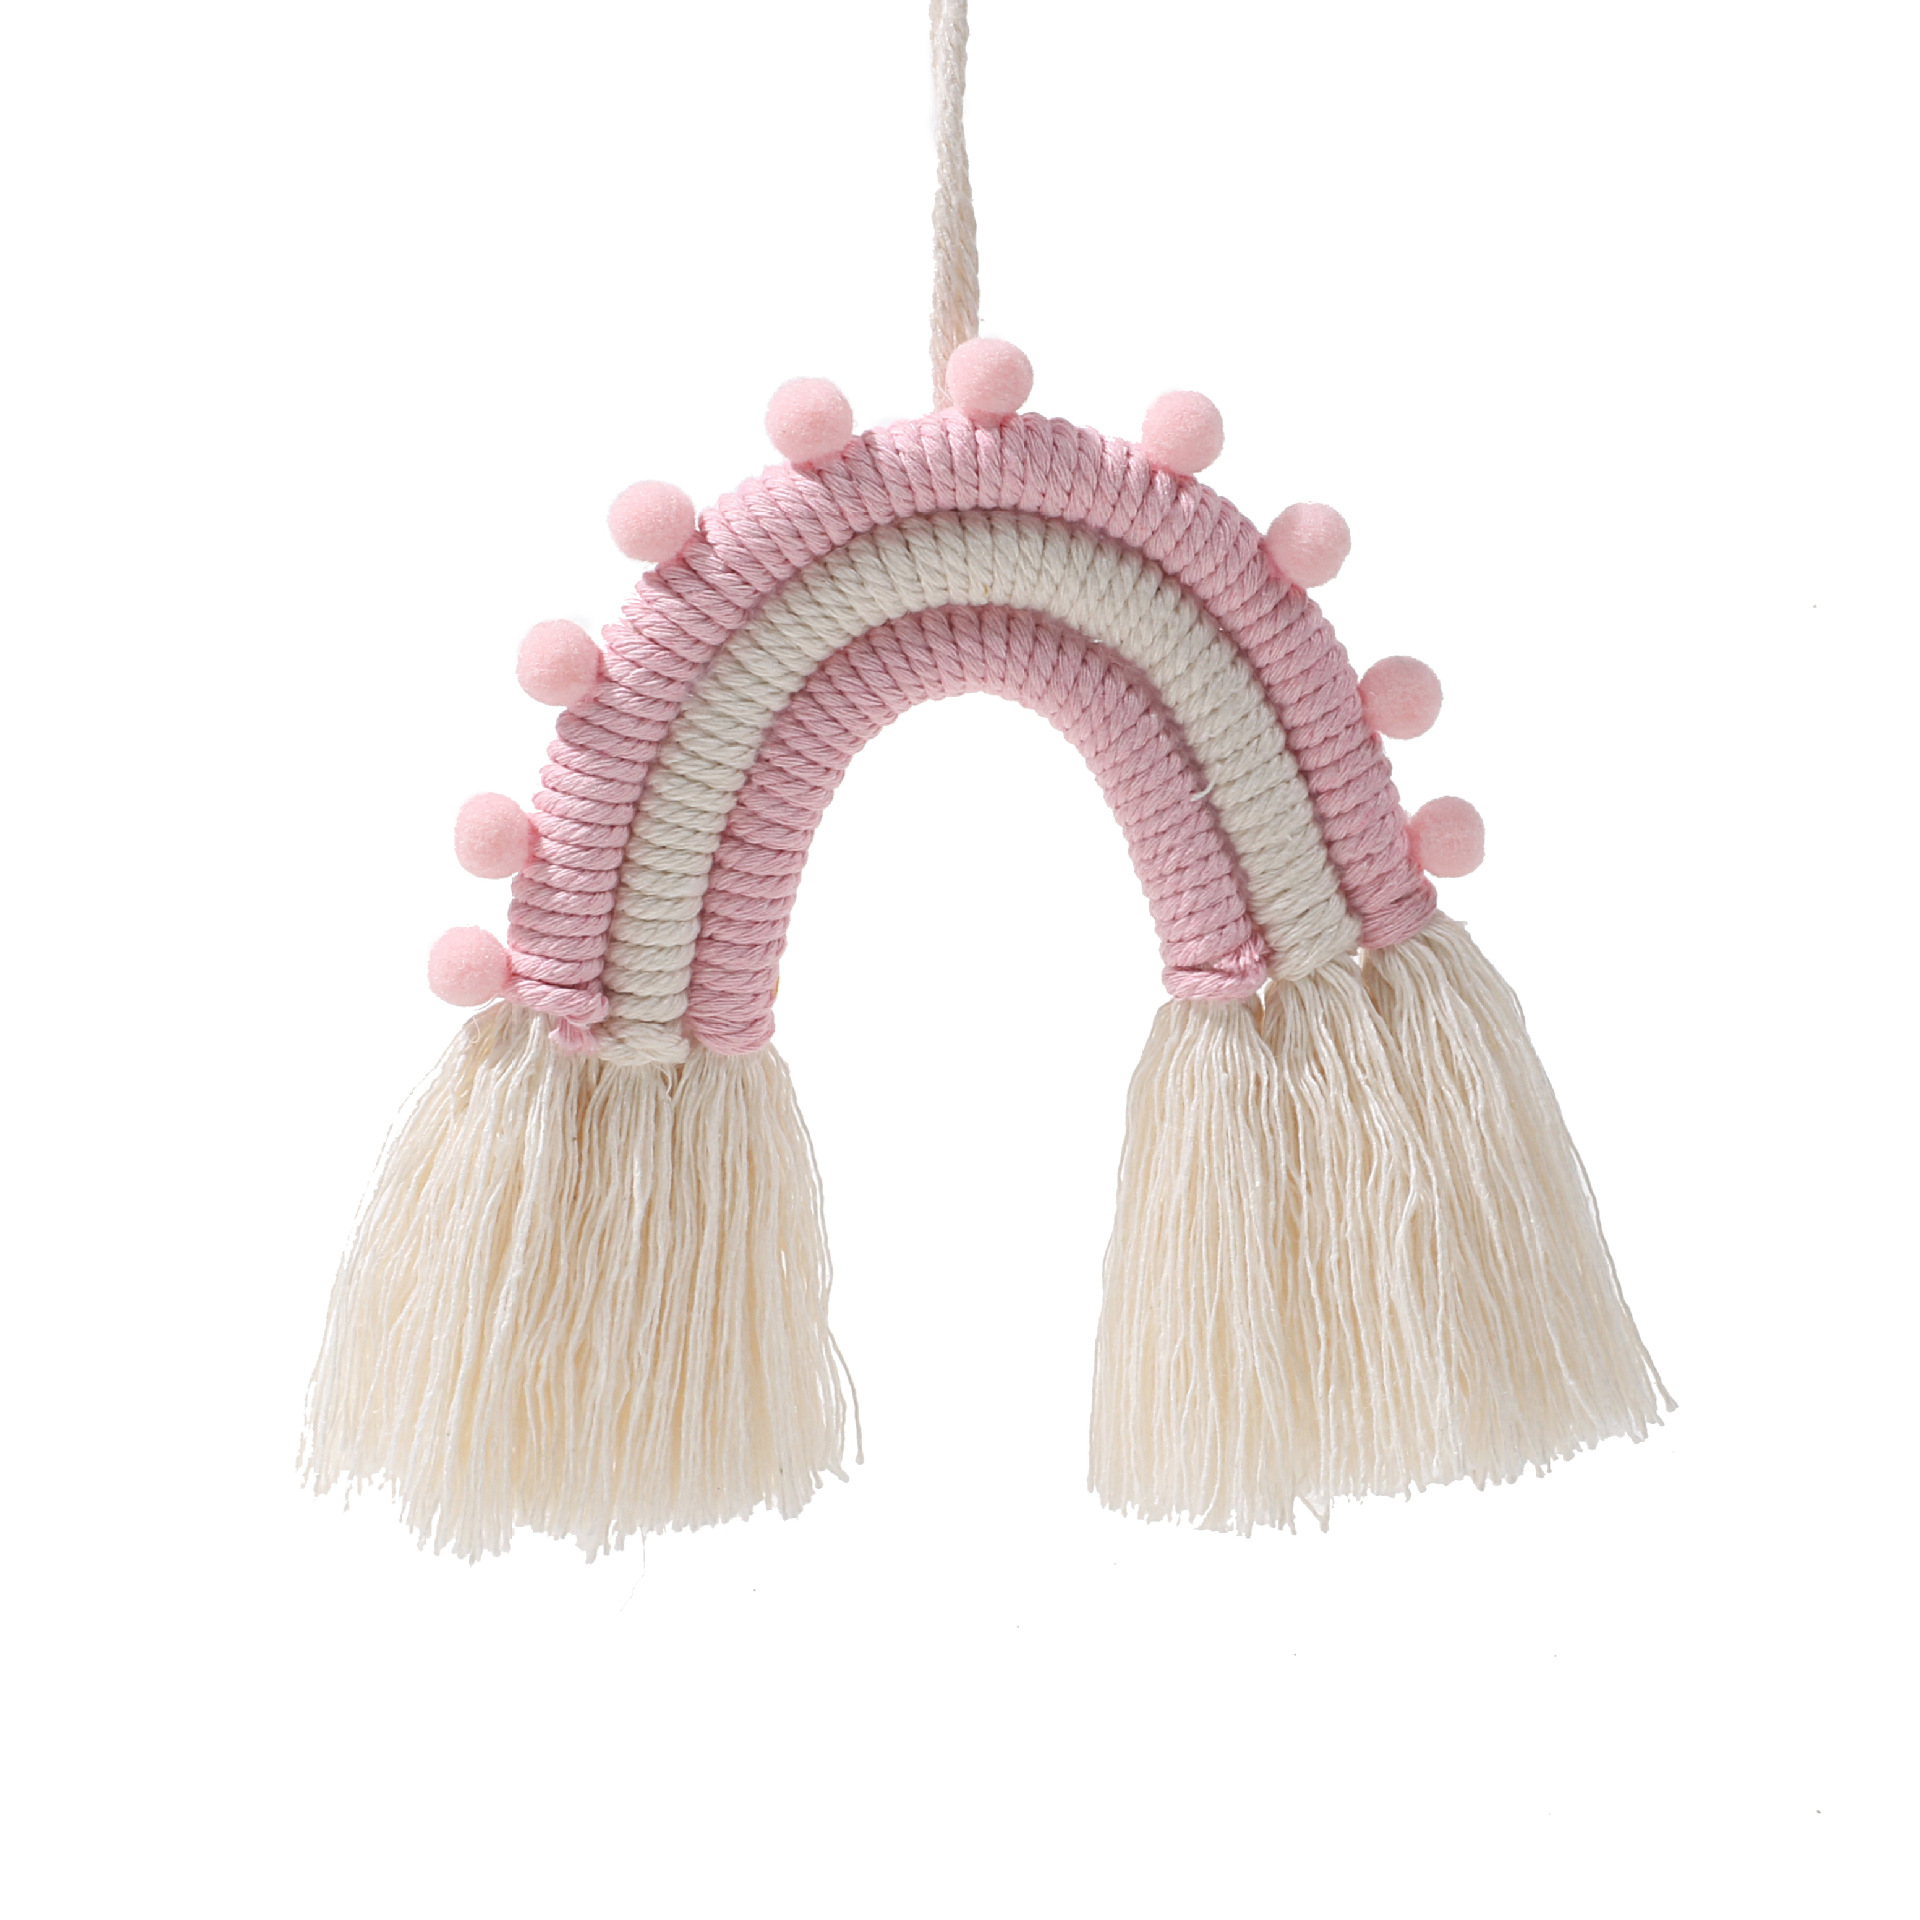 Rainbow Shape Tapestry With Tassel Cotton Rope Home Wall Decoration Craft Pink_m0290